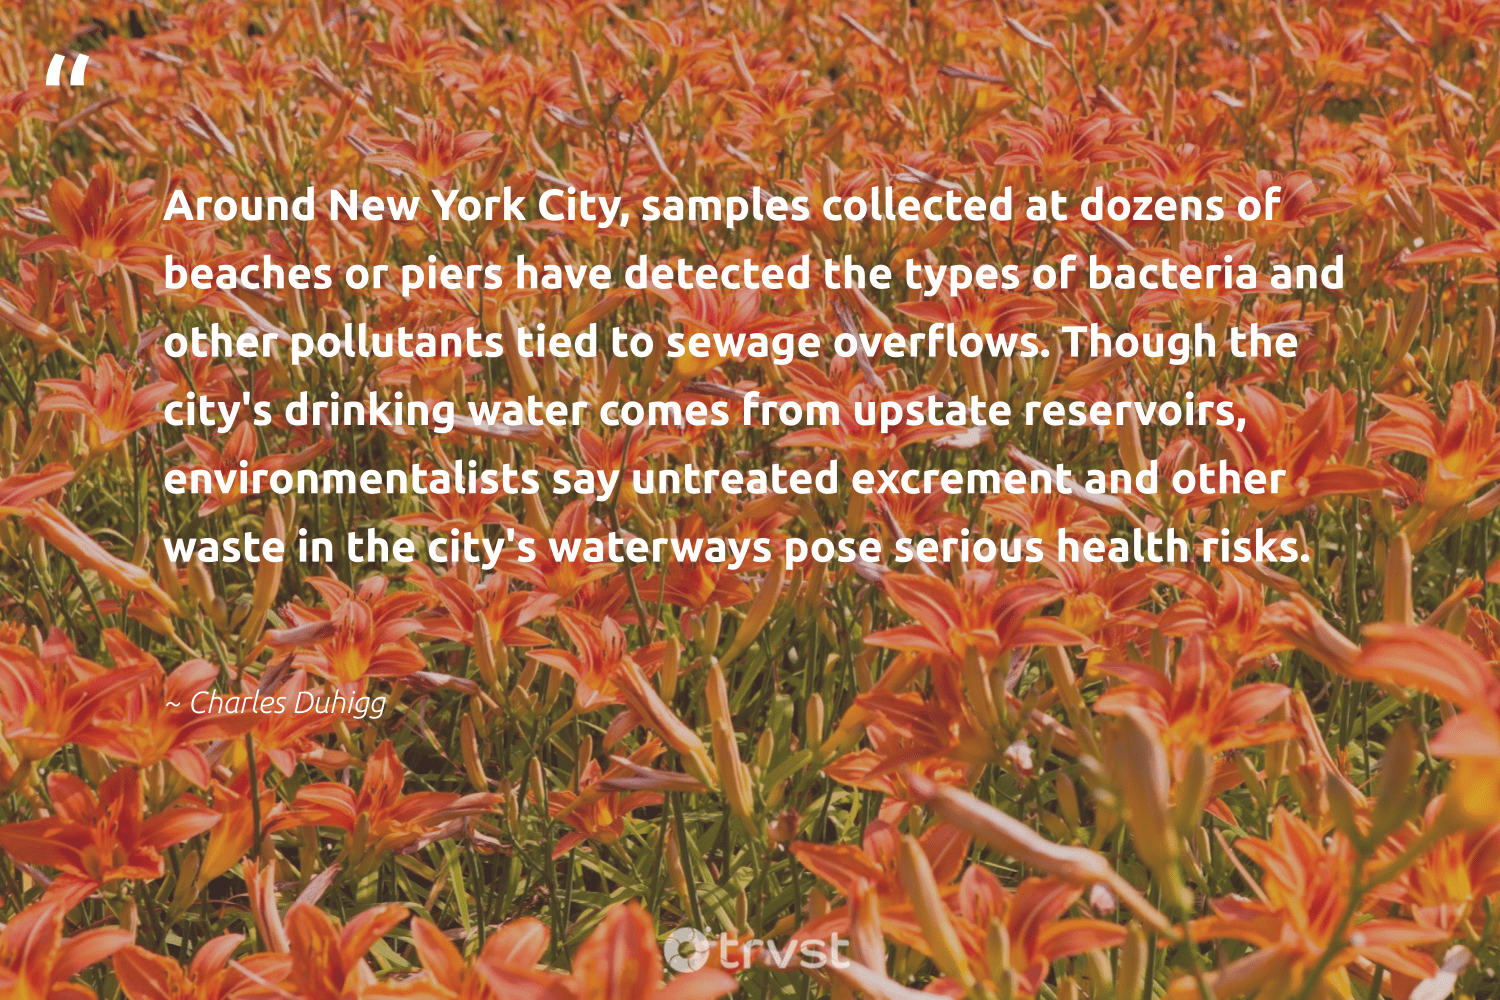 """""""Around New York City, samples collected at dozens of beaches or piers have detected the types of bacteria and other pollutants tied to sewage overflows. Though the city's drinking water comes from upstate reservoirs, environmentalists say untreated excrement and other waste in the city's waterways pose serious health risks.""""  - Charles Duhigg #trvst #quotes #ocean #waste #water #health #river #savetheplanet #giveback #impact #saveourocean #earth"""